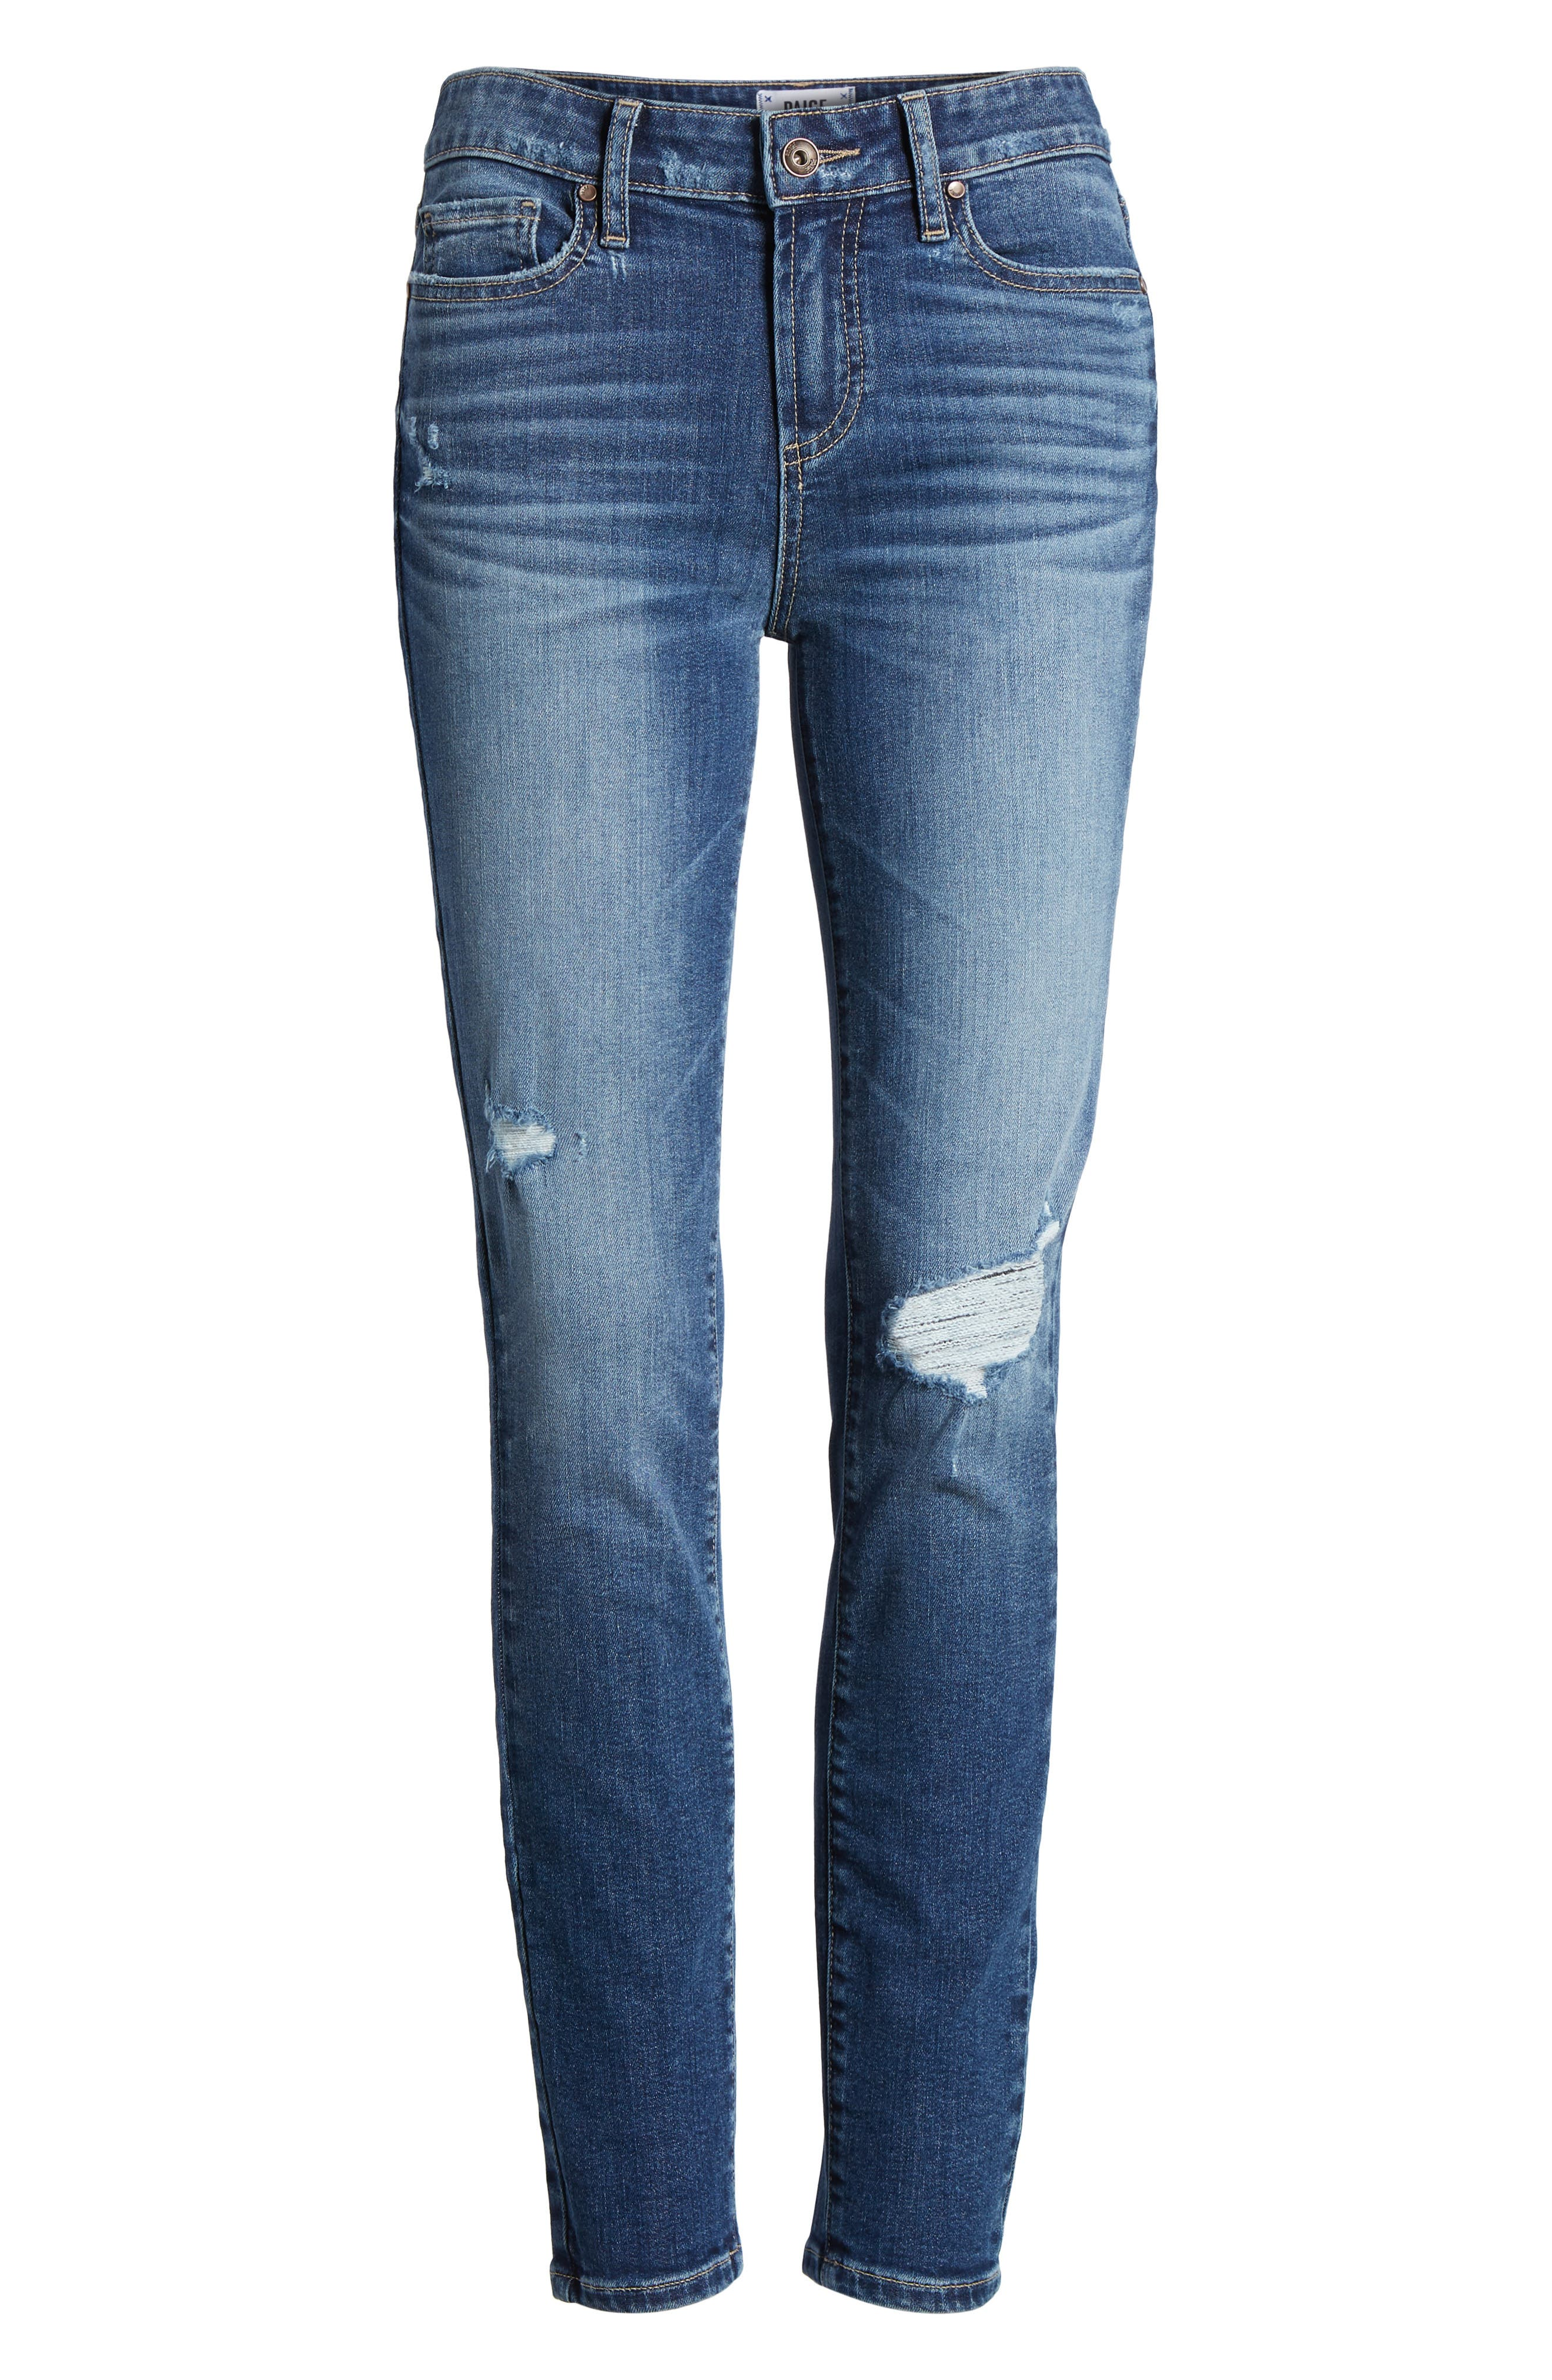 Transcend Vintage - Verdugo Ankle Skinny Jeans,                             Alternate thumbnail 7, color,                             400